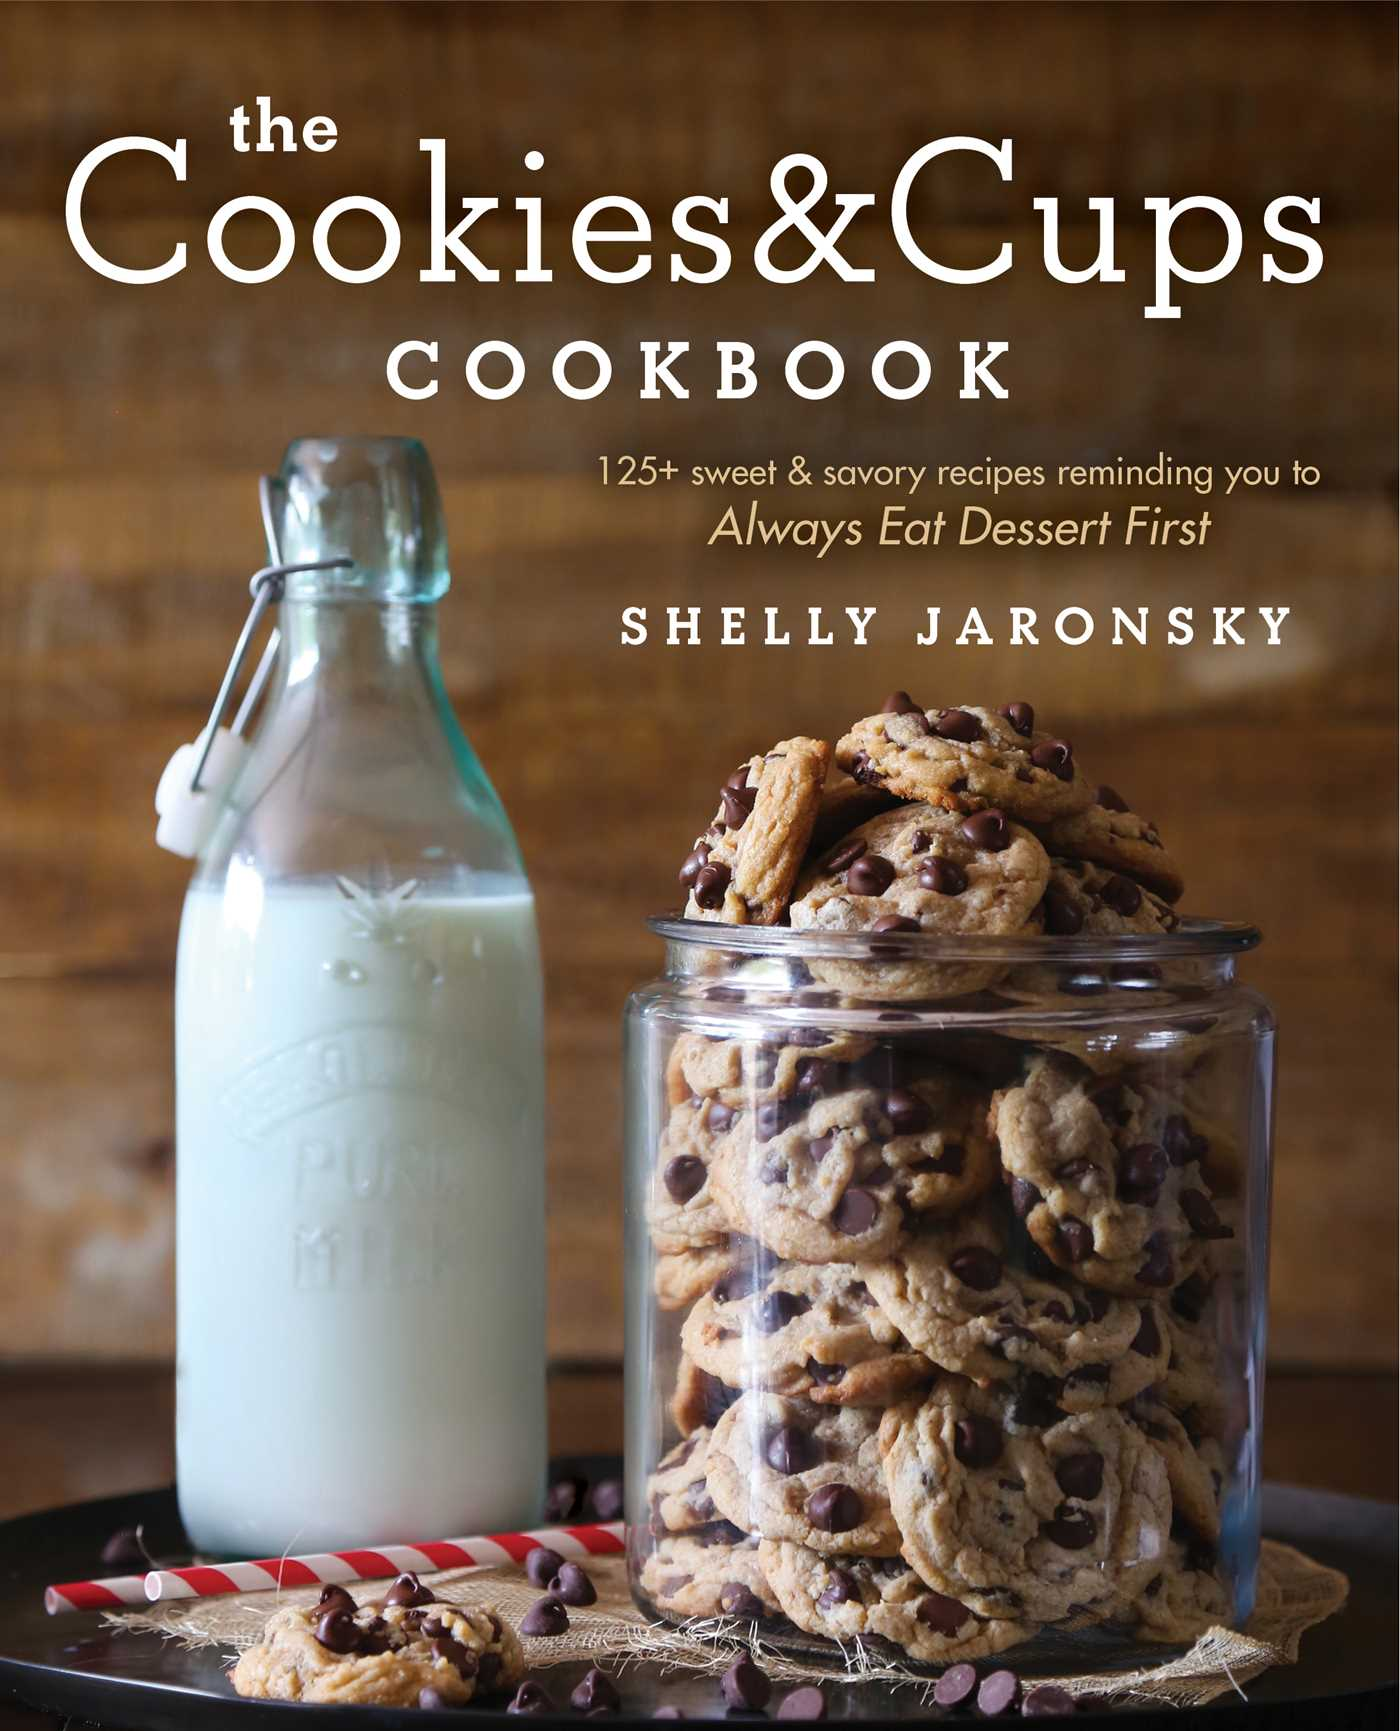 The cookies cups cookbook 9781501102561 hr